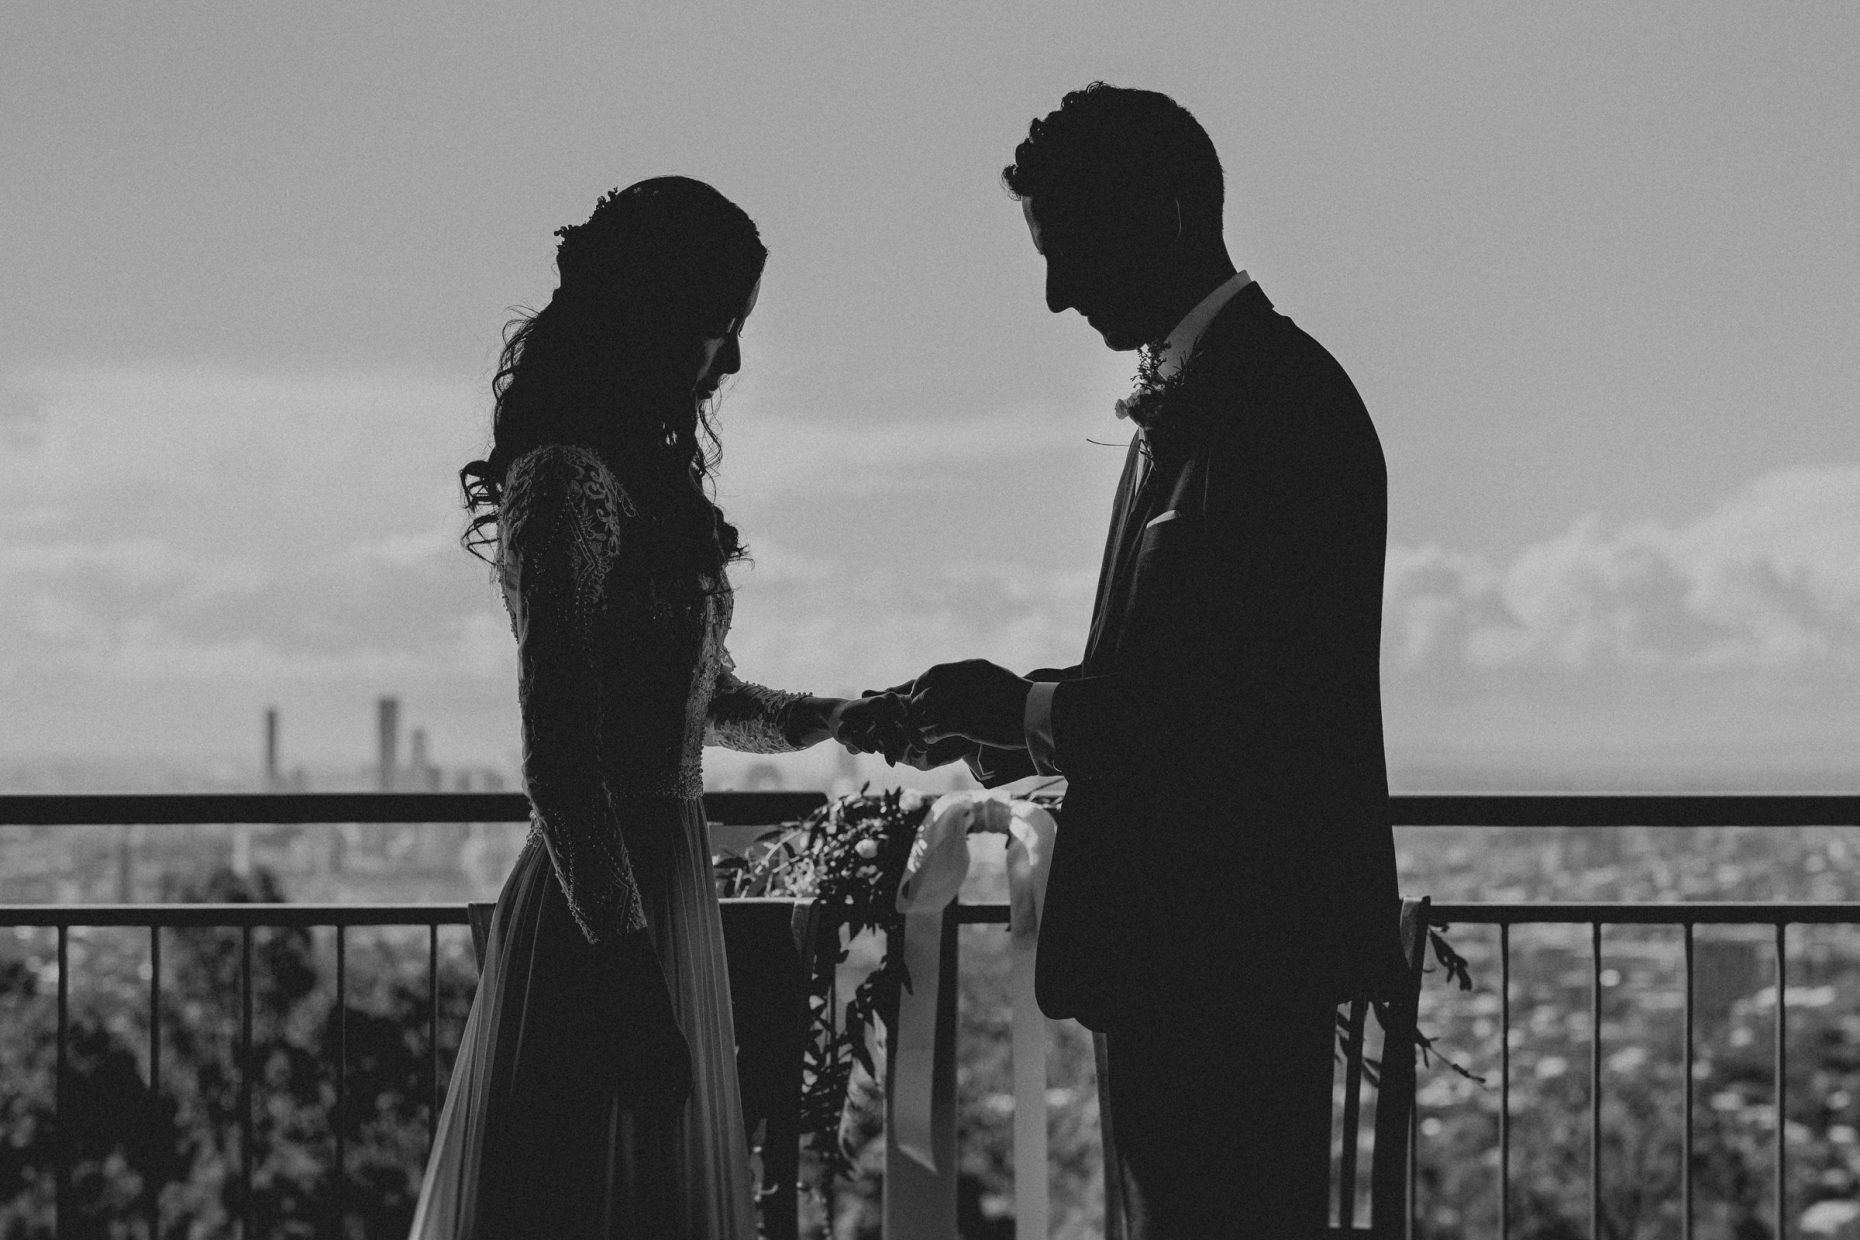 A silhouetted groom holds the hands of a silhouetted bride during their wedding ceremony